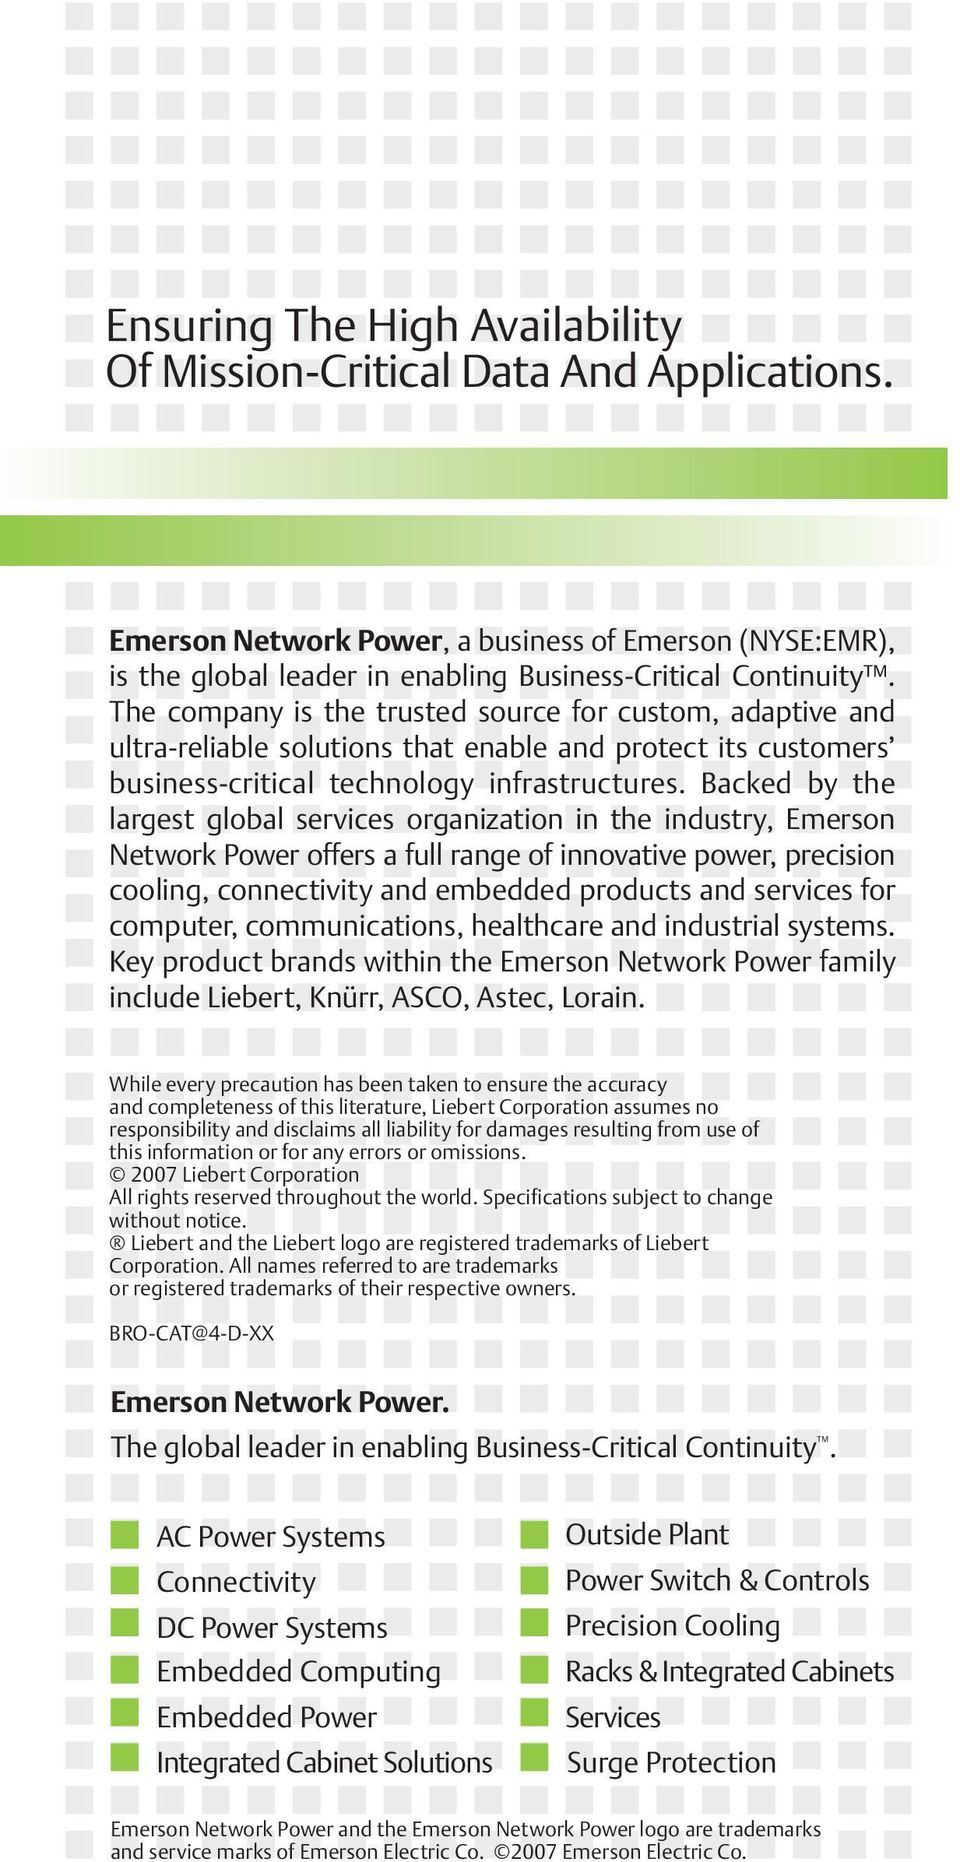 Backed by the largest global services organization in the industry, Emerson Network Power offers a full range of innovative power, precision cooling, connectivity and embedded products and services